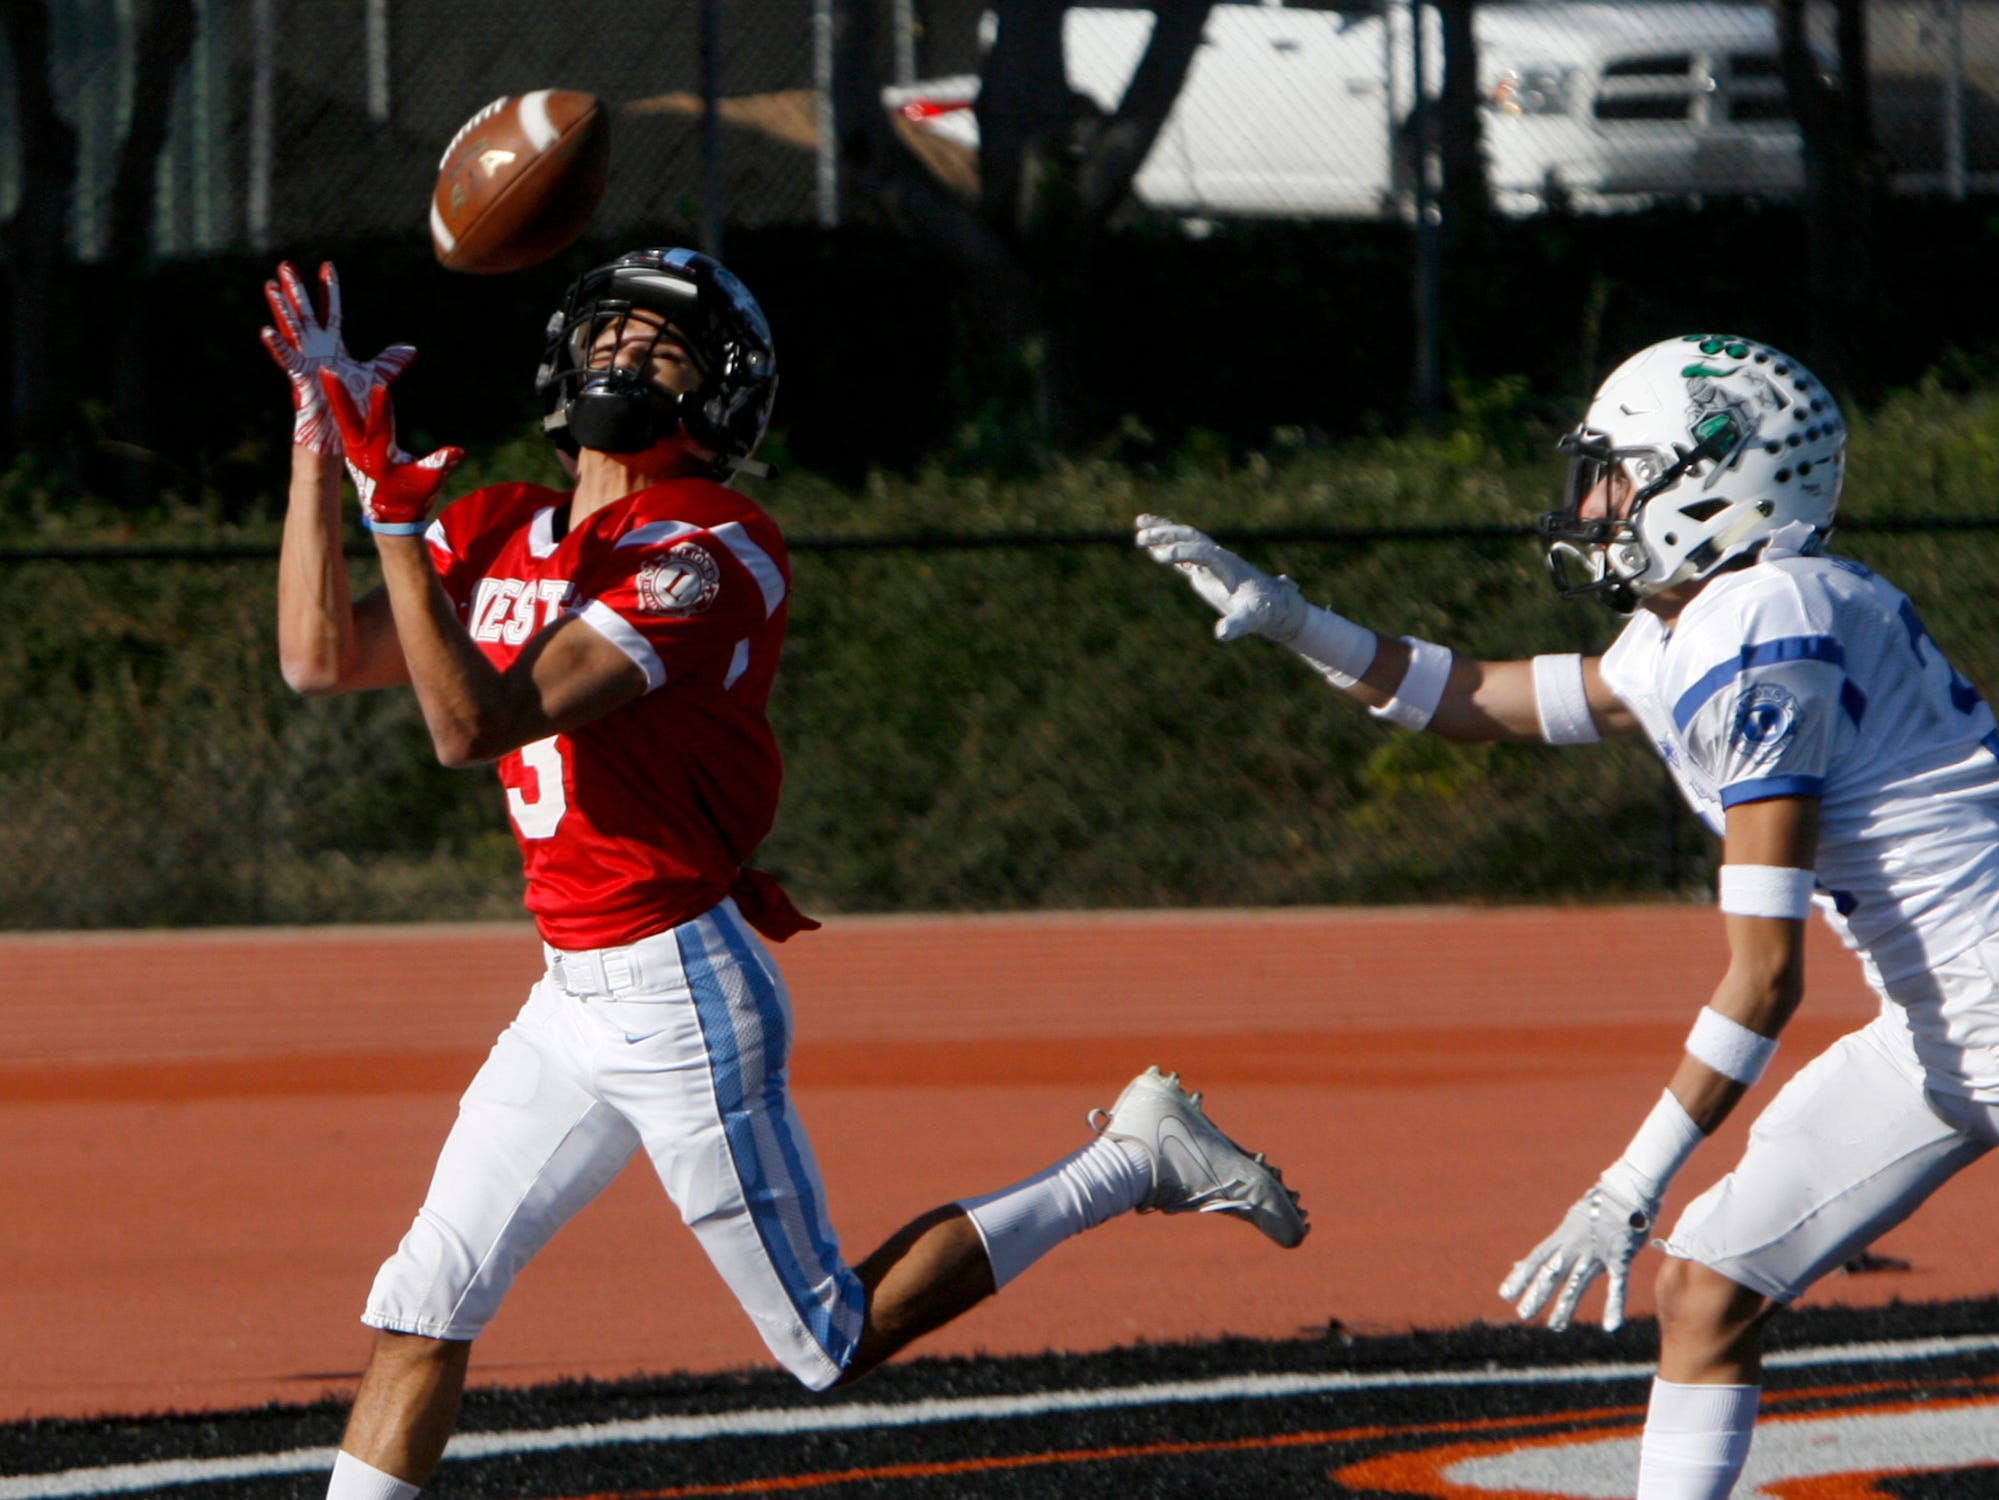 West All-Star wide receiver Devin Morris catches a touchdown pass behind East All-Star defensive back Ryan Vasquez during the West's 35-24 victory in the 46th annual Ventura County High School All-Star Football Game at Ventura College on Saturday.